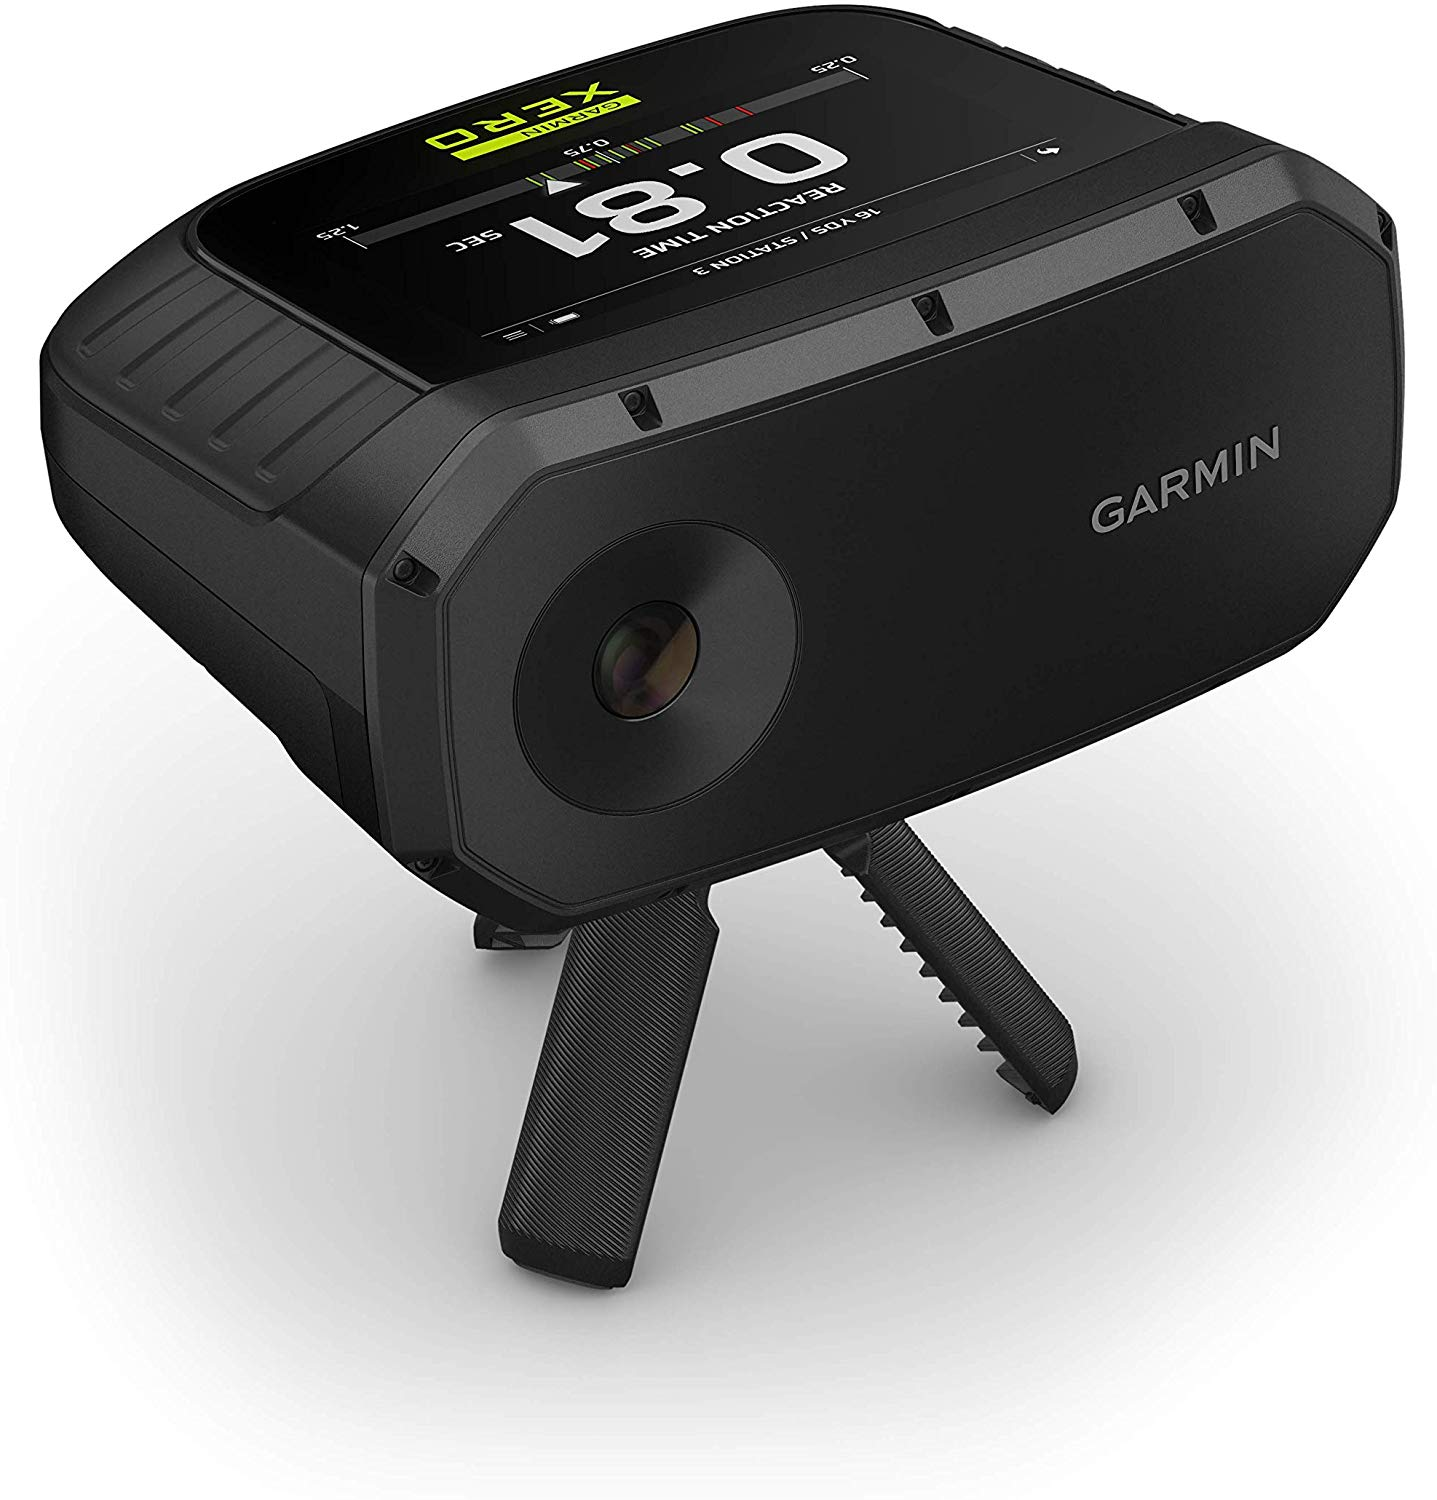 Garmin Xero S1 Trapshooting Live-Fire Trainer